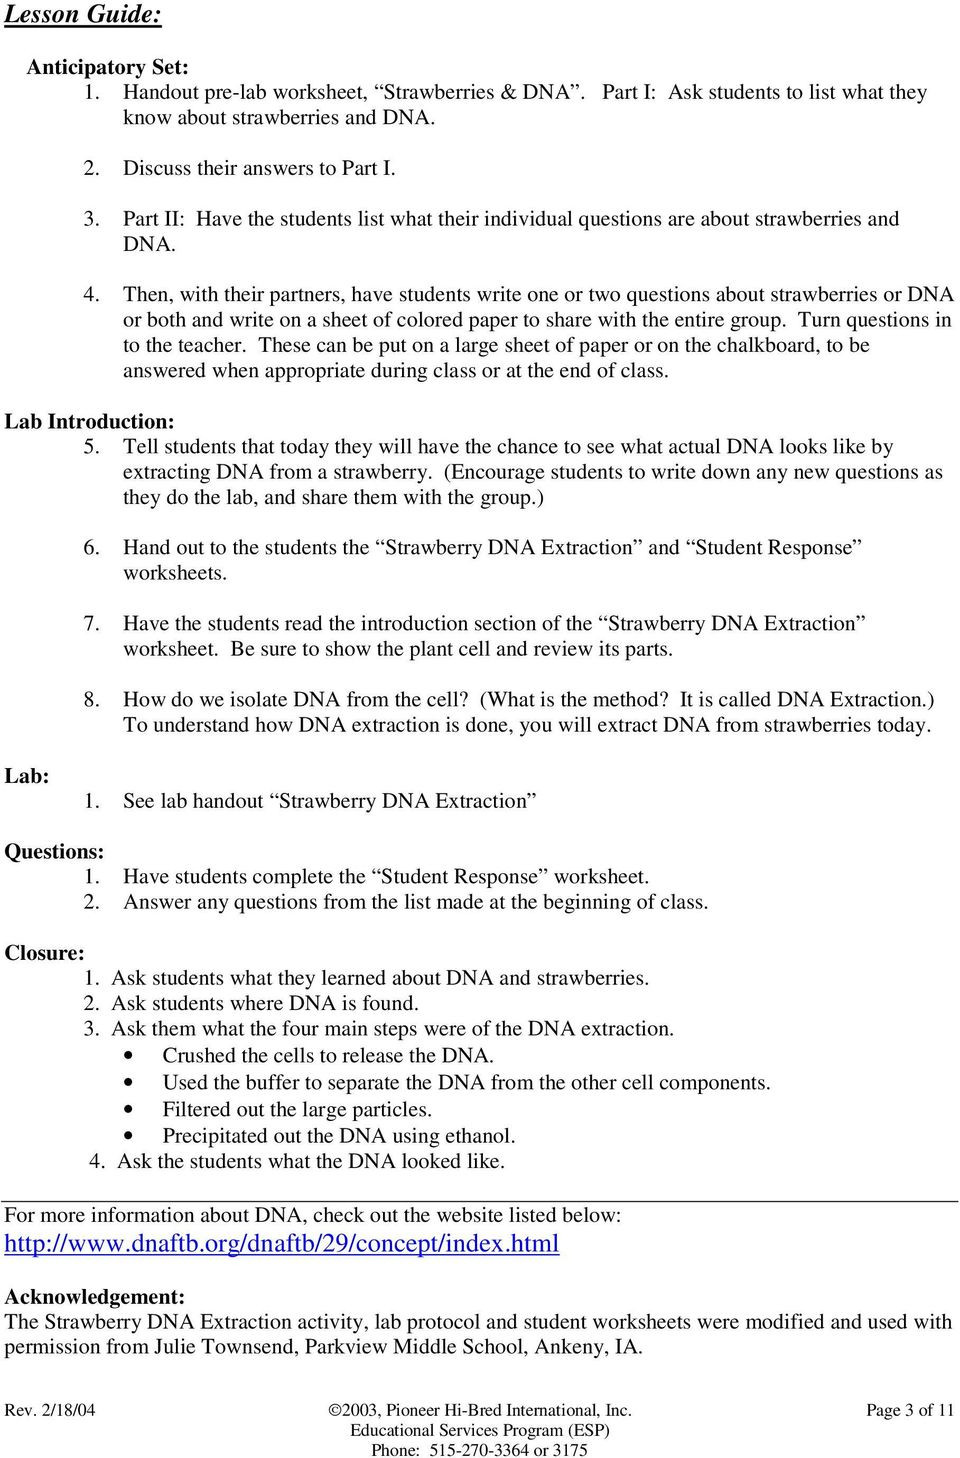 Module 3 Strawberry DNA Extraction PDF Free Download